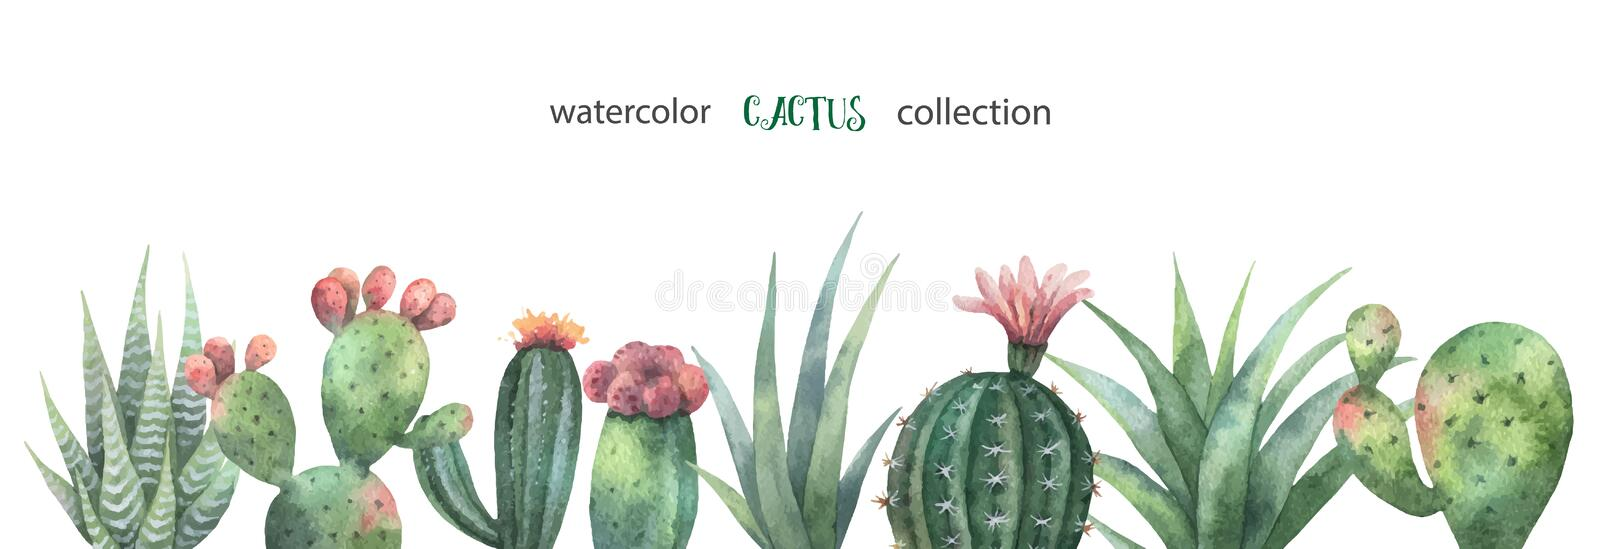 Watercolor vector banner of cacti and succulent plants isolated on white background. Flower illustration for your projects, greeting cards and invitations vector illustration